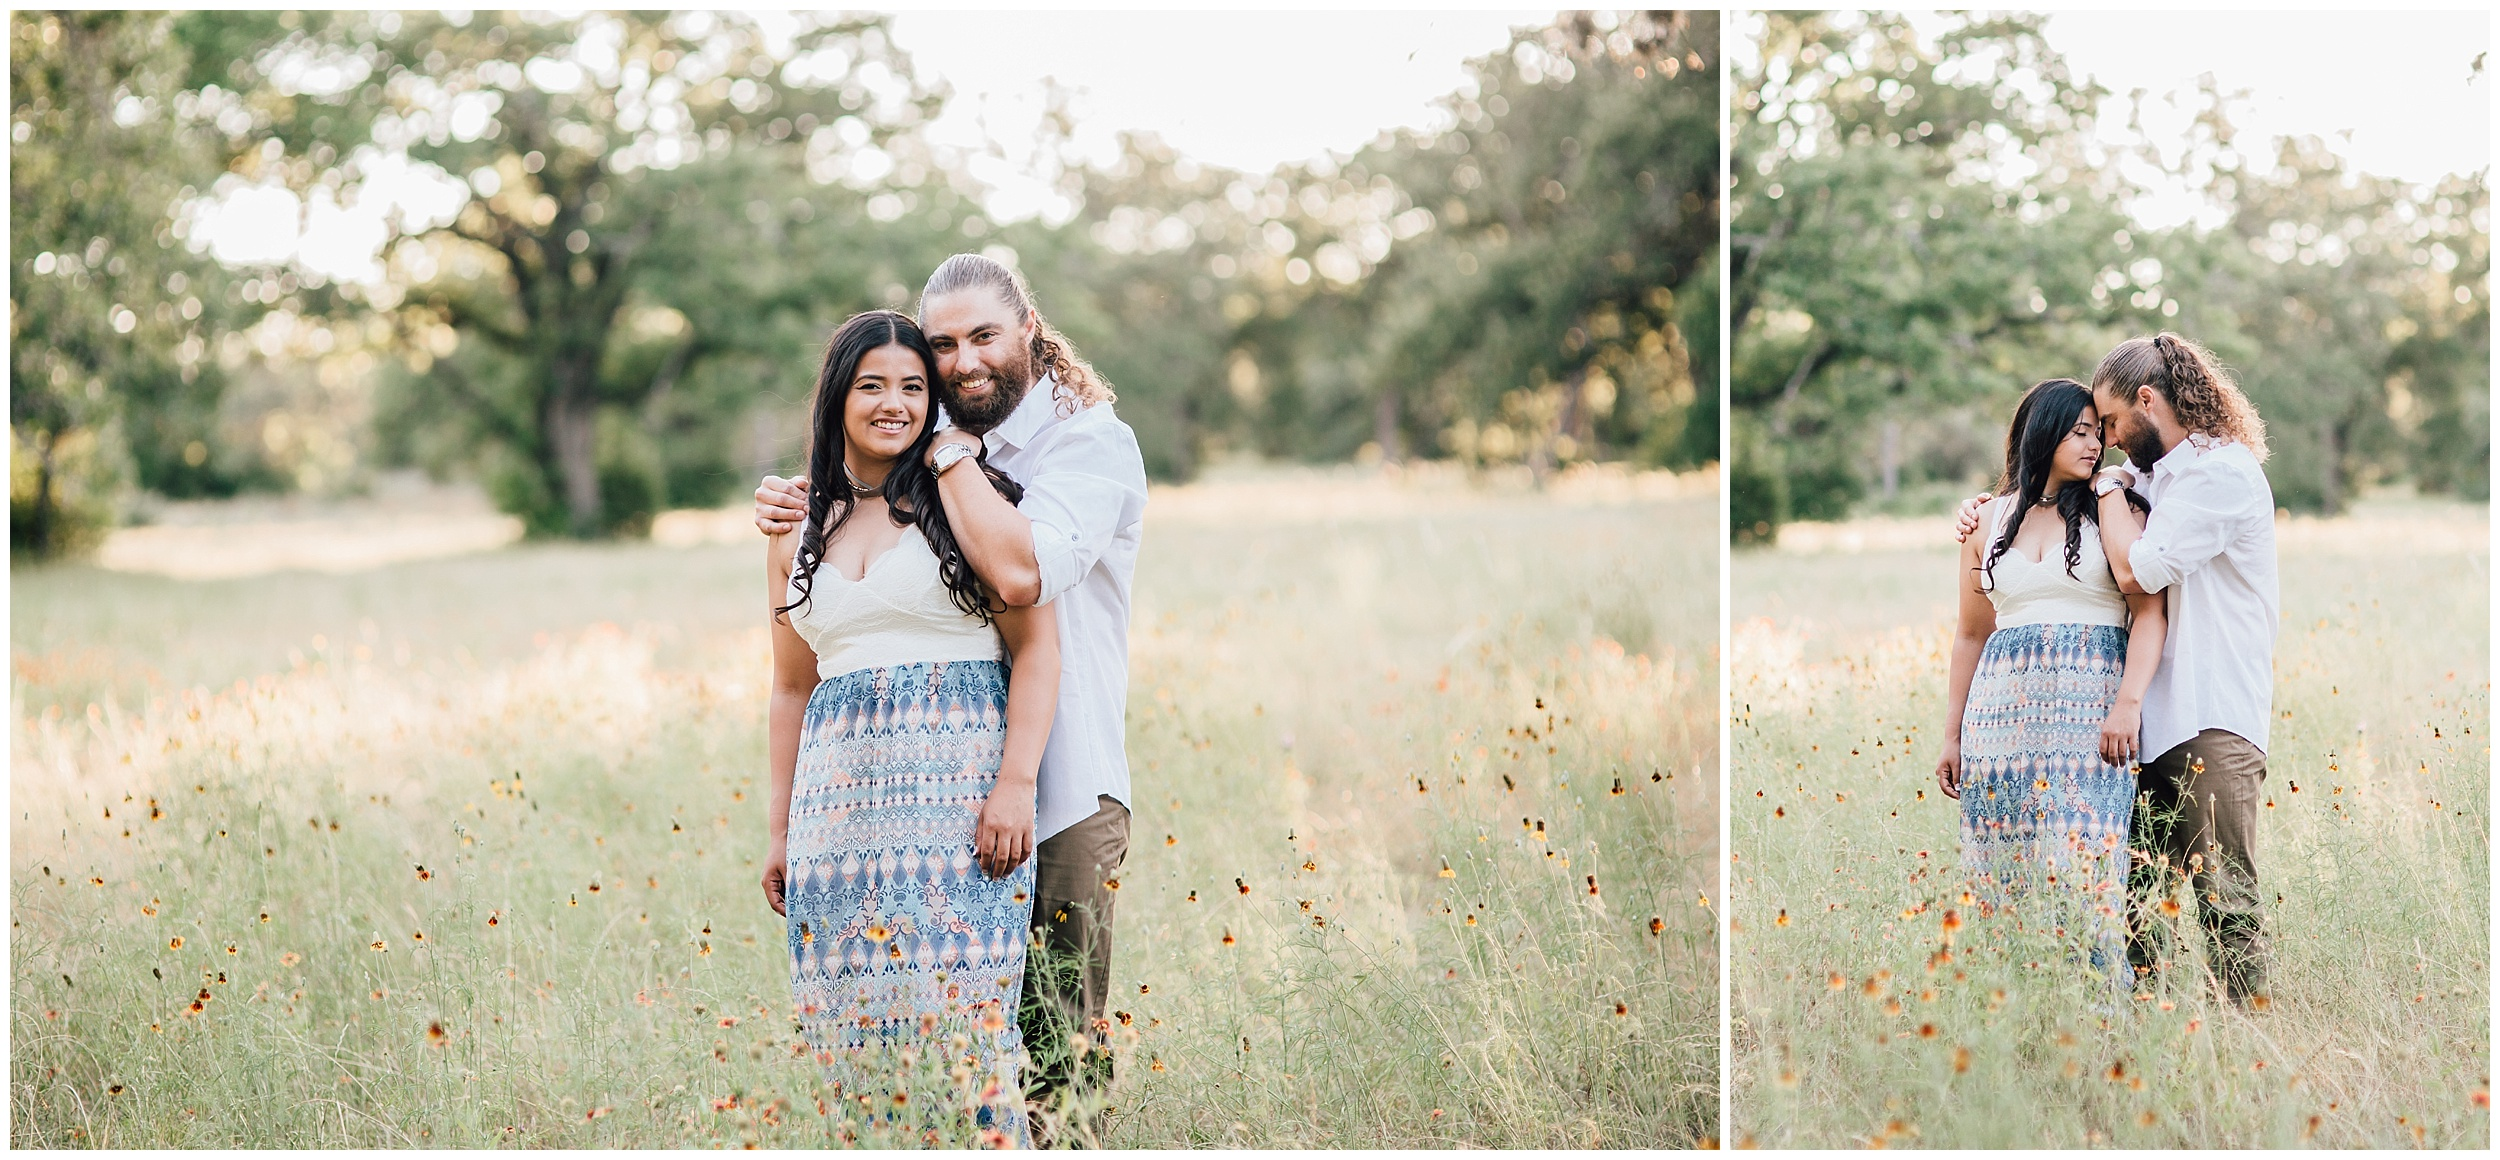 Austin Family Photographer16.jpg